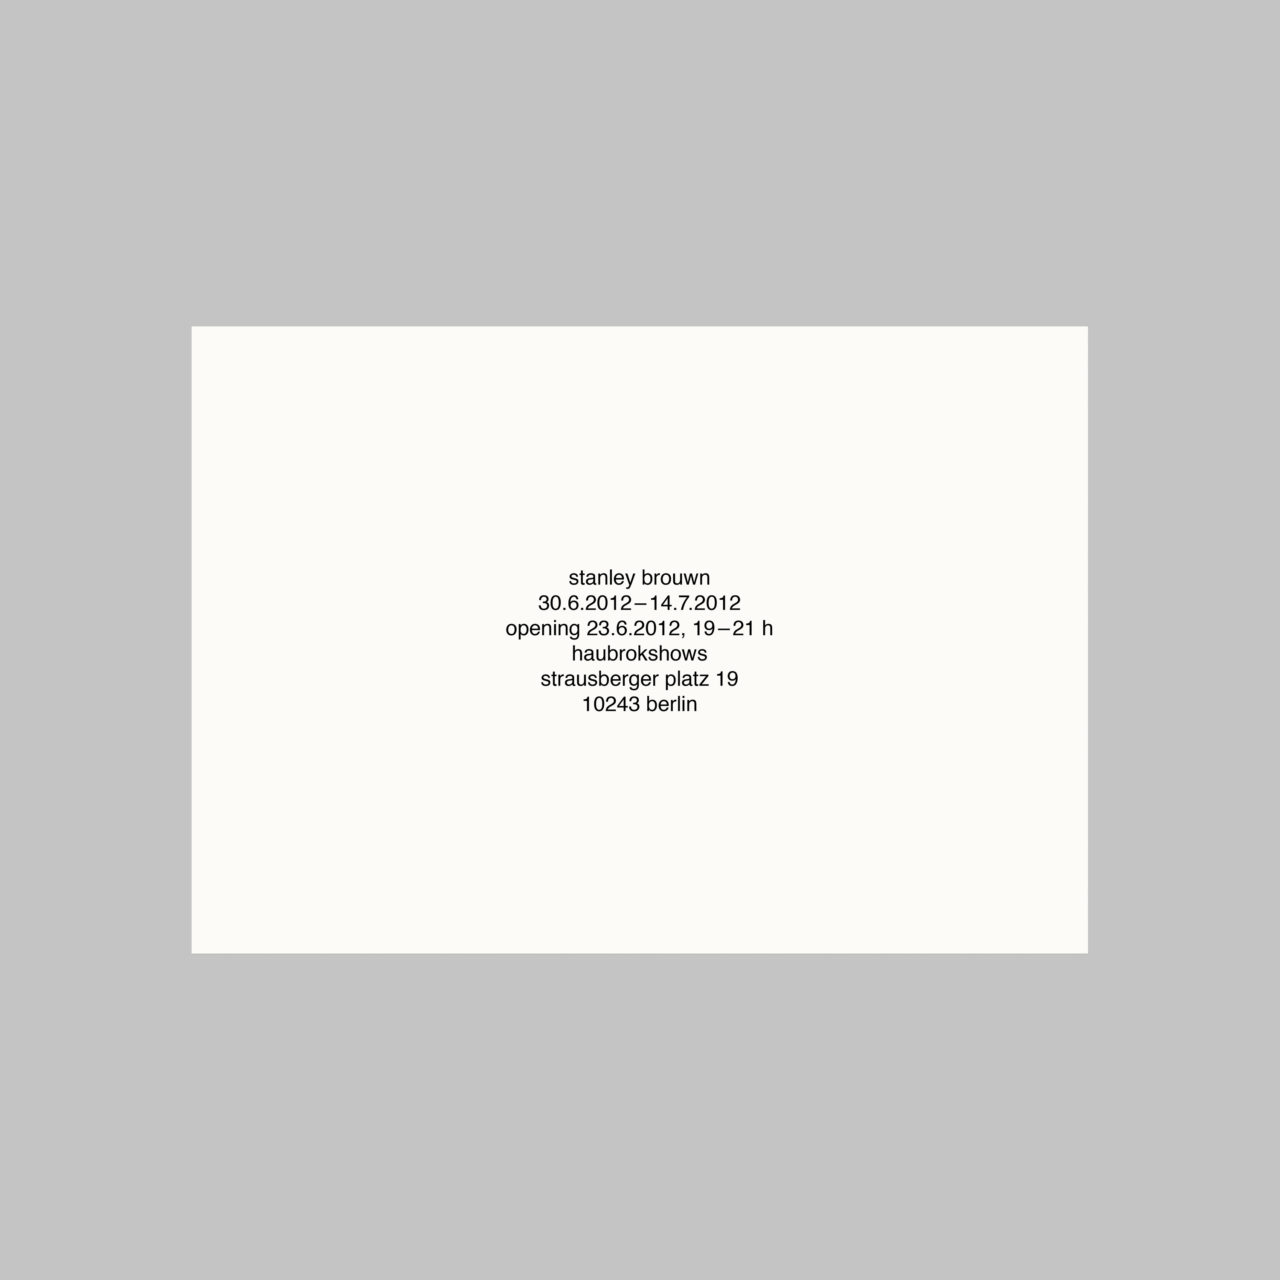 Stanley Brouwn, untitled (Announcement card) (2012)